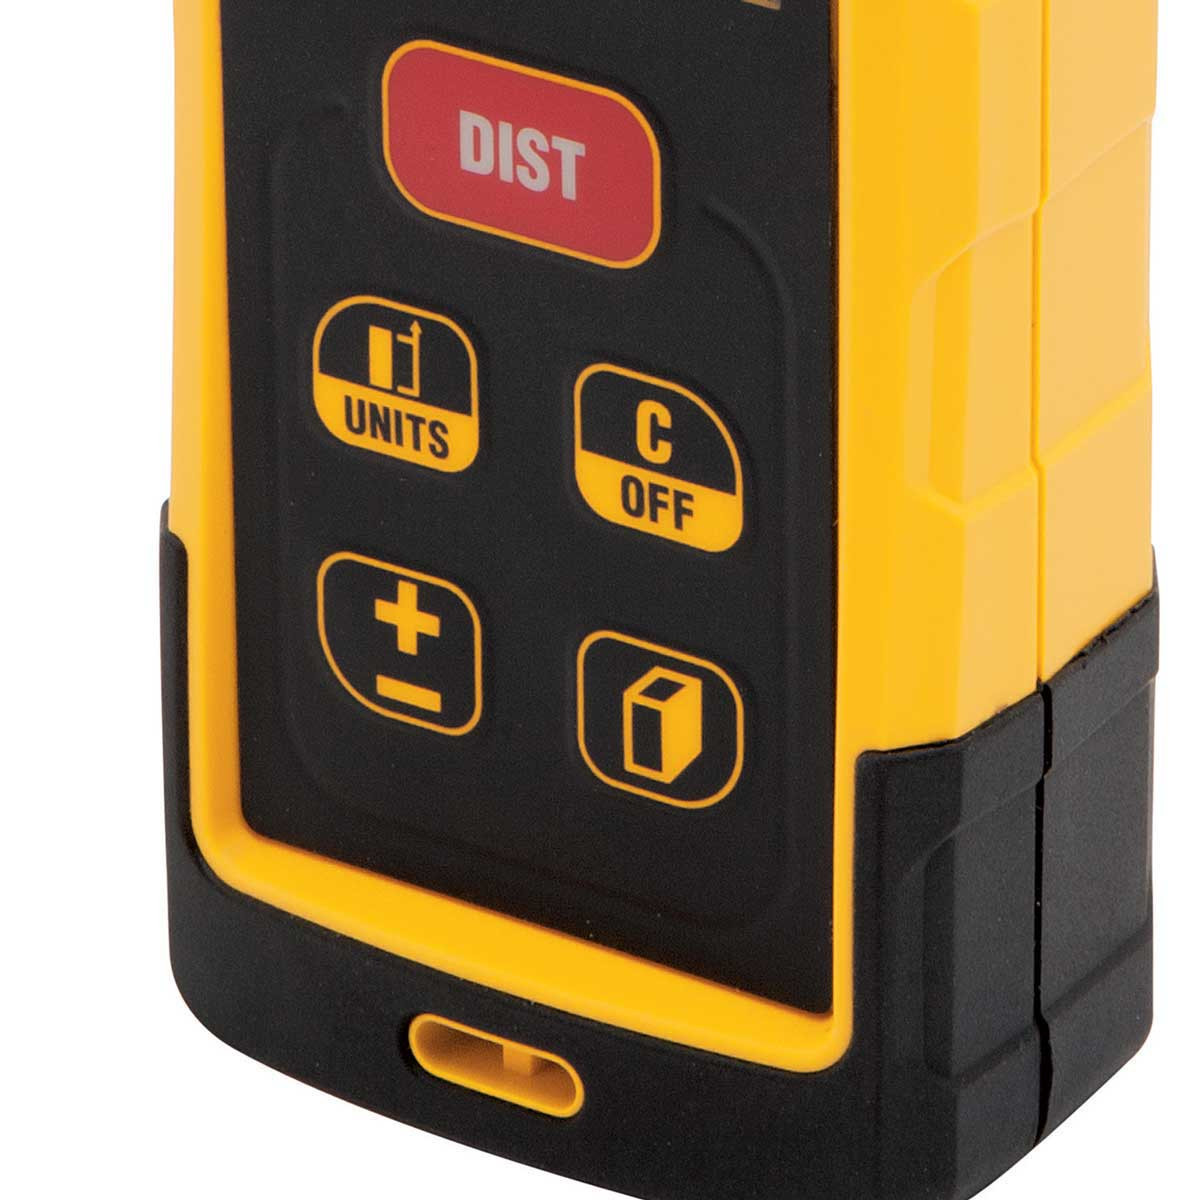 DW03050 DeWalt Laser Distance Measure